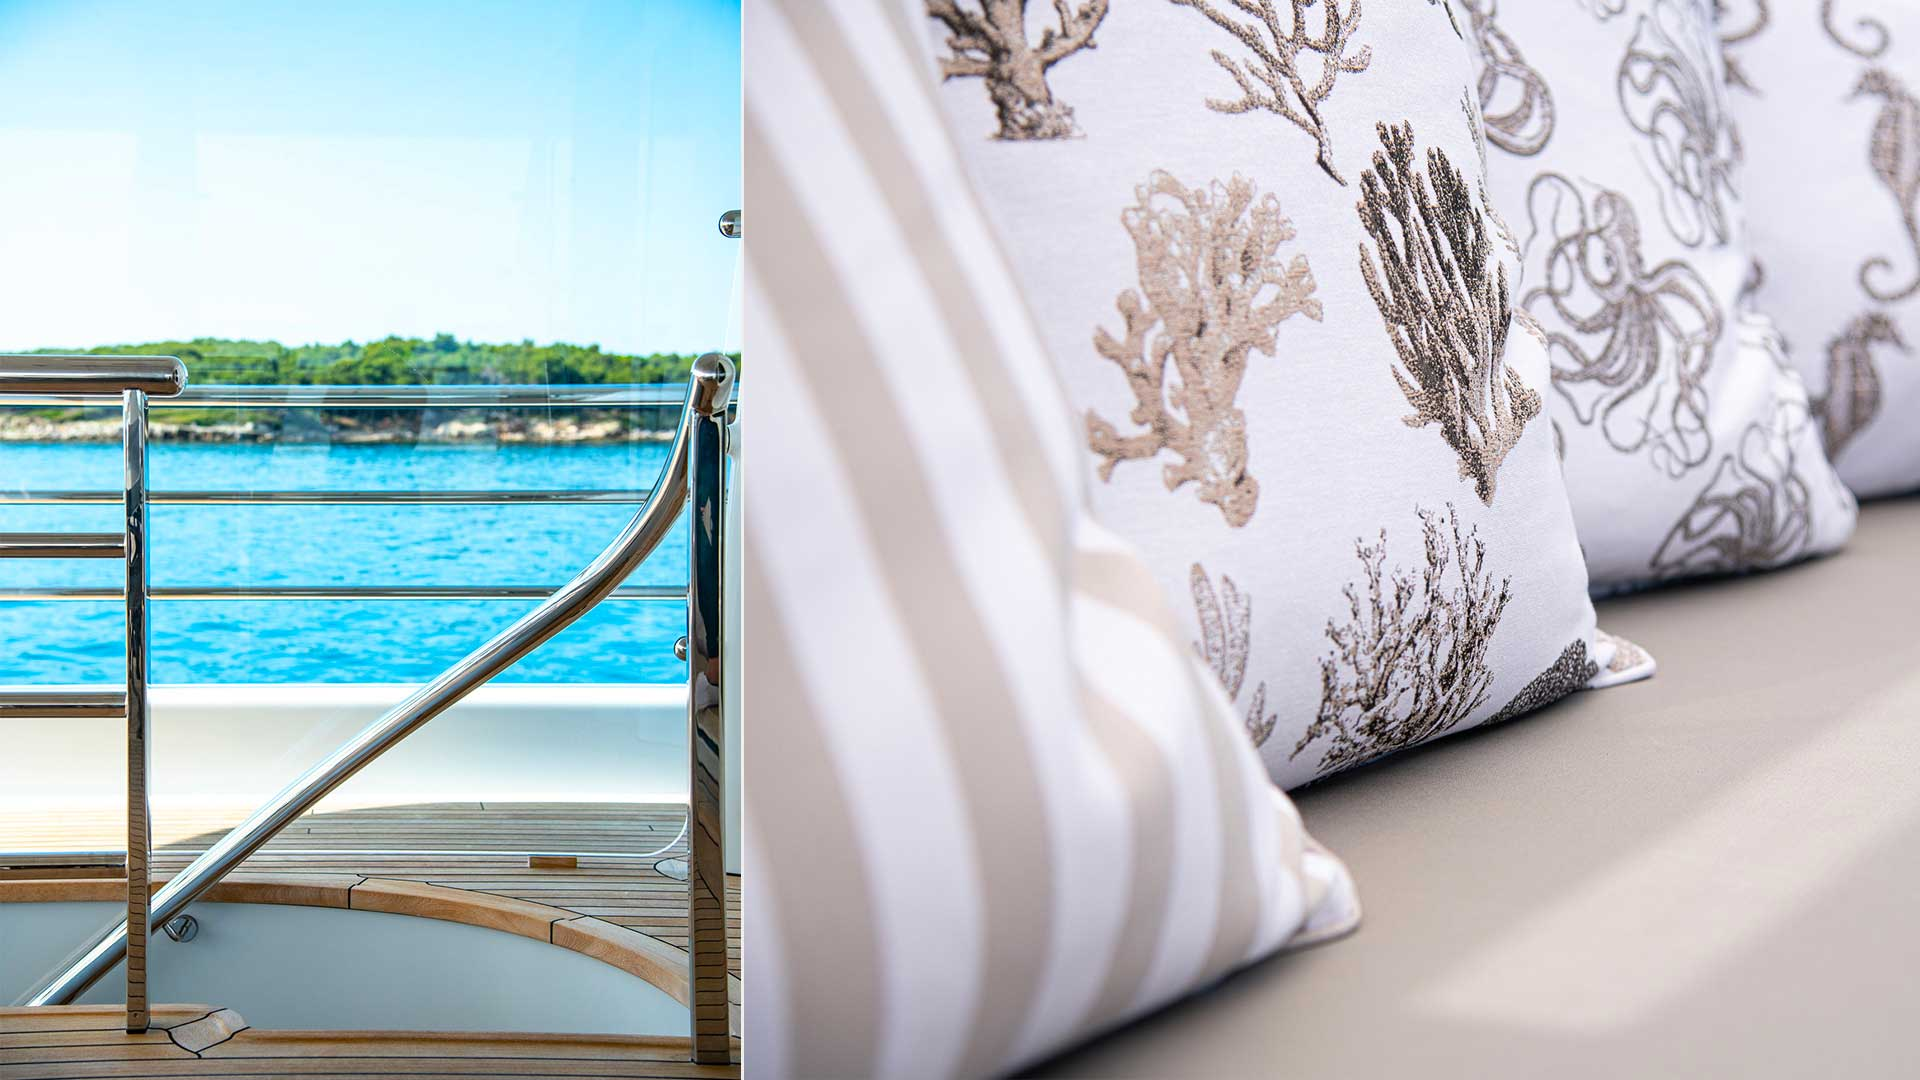 YACHT-REFIT-AMELS-LIMITED-EDITION-27-Dome-interior-design-Geneve-Suisse